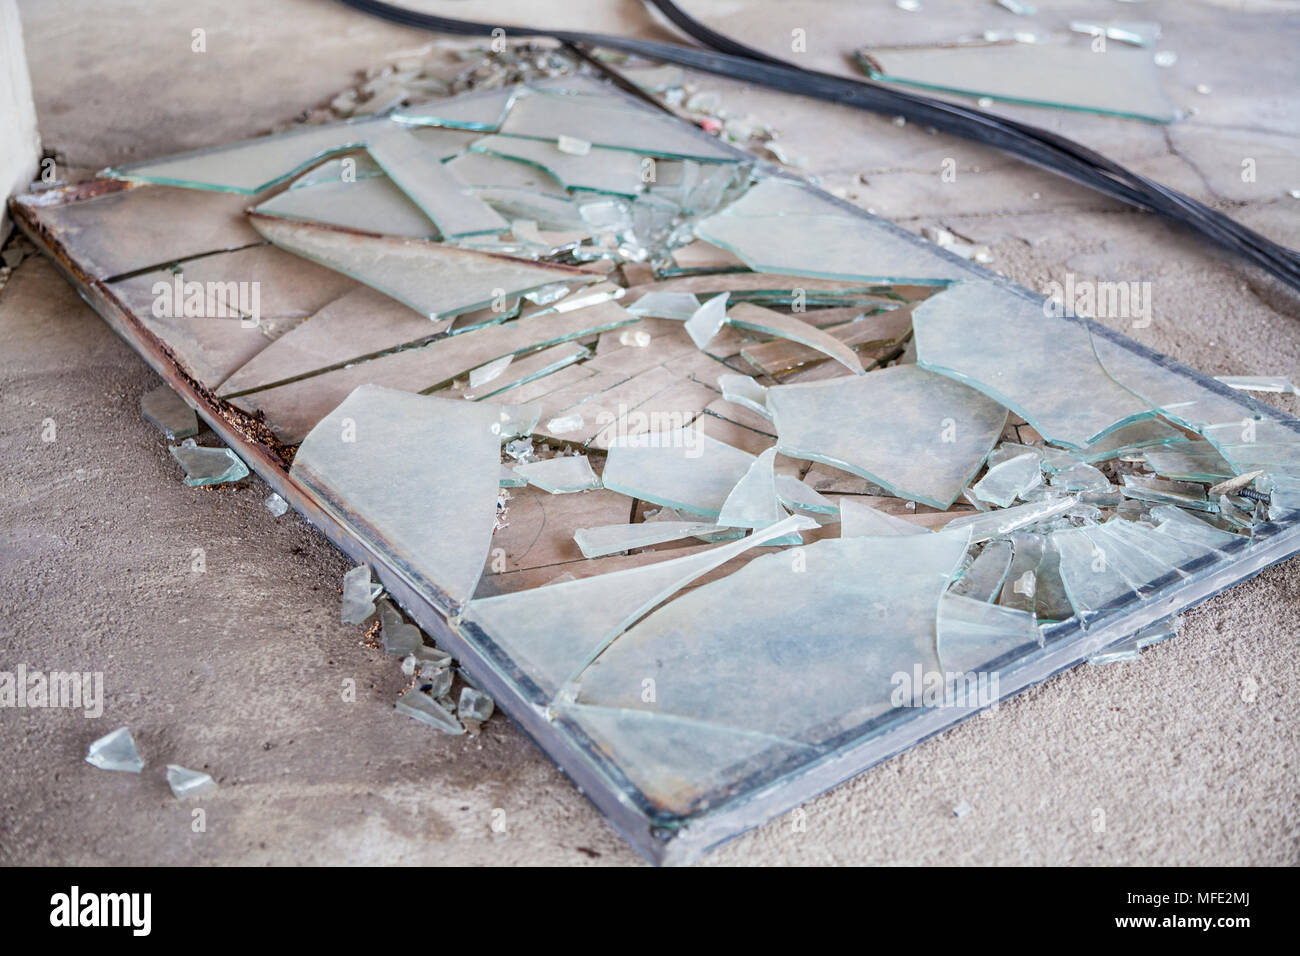 A smashed window inside a bombed out building from the Bosnian War in Mostar, Bosnia and Herzegovina - Stock Image